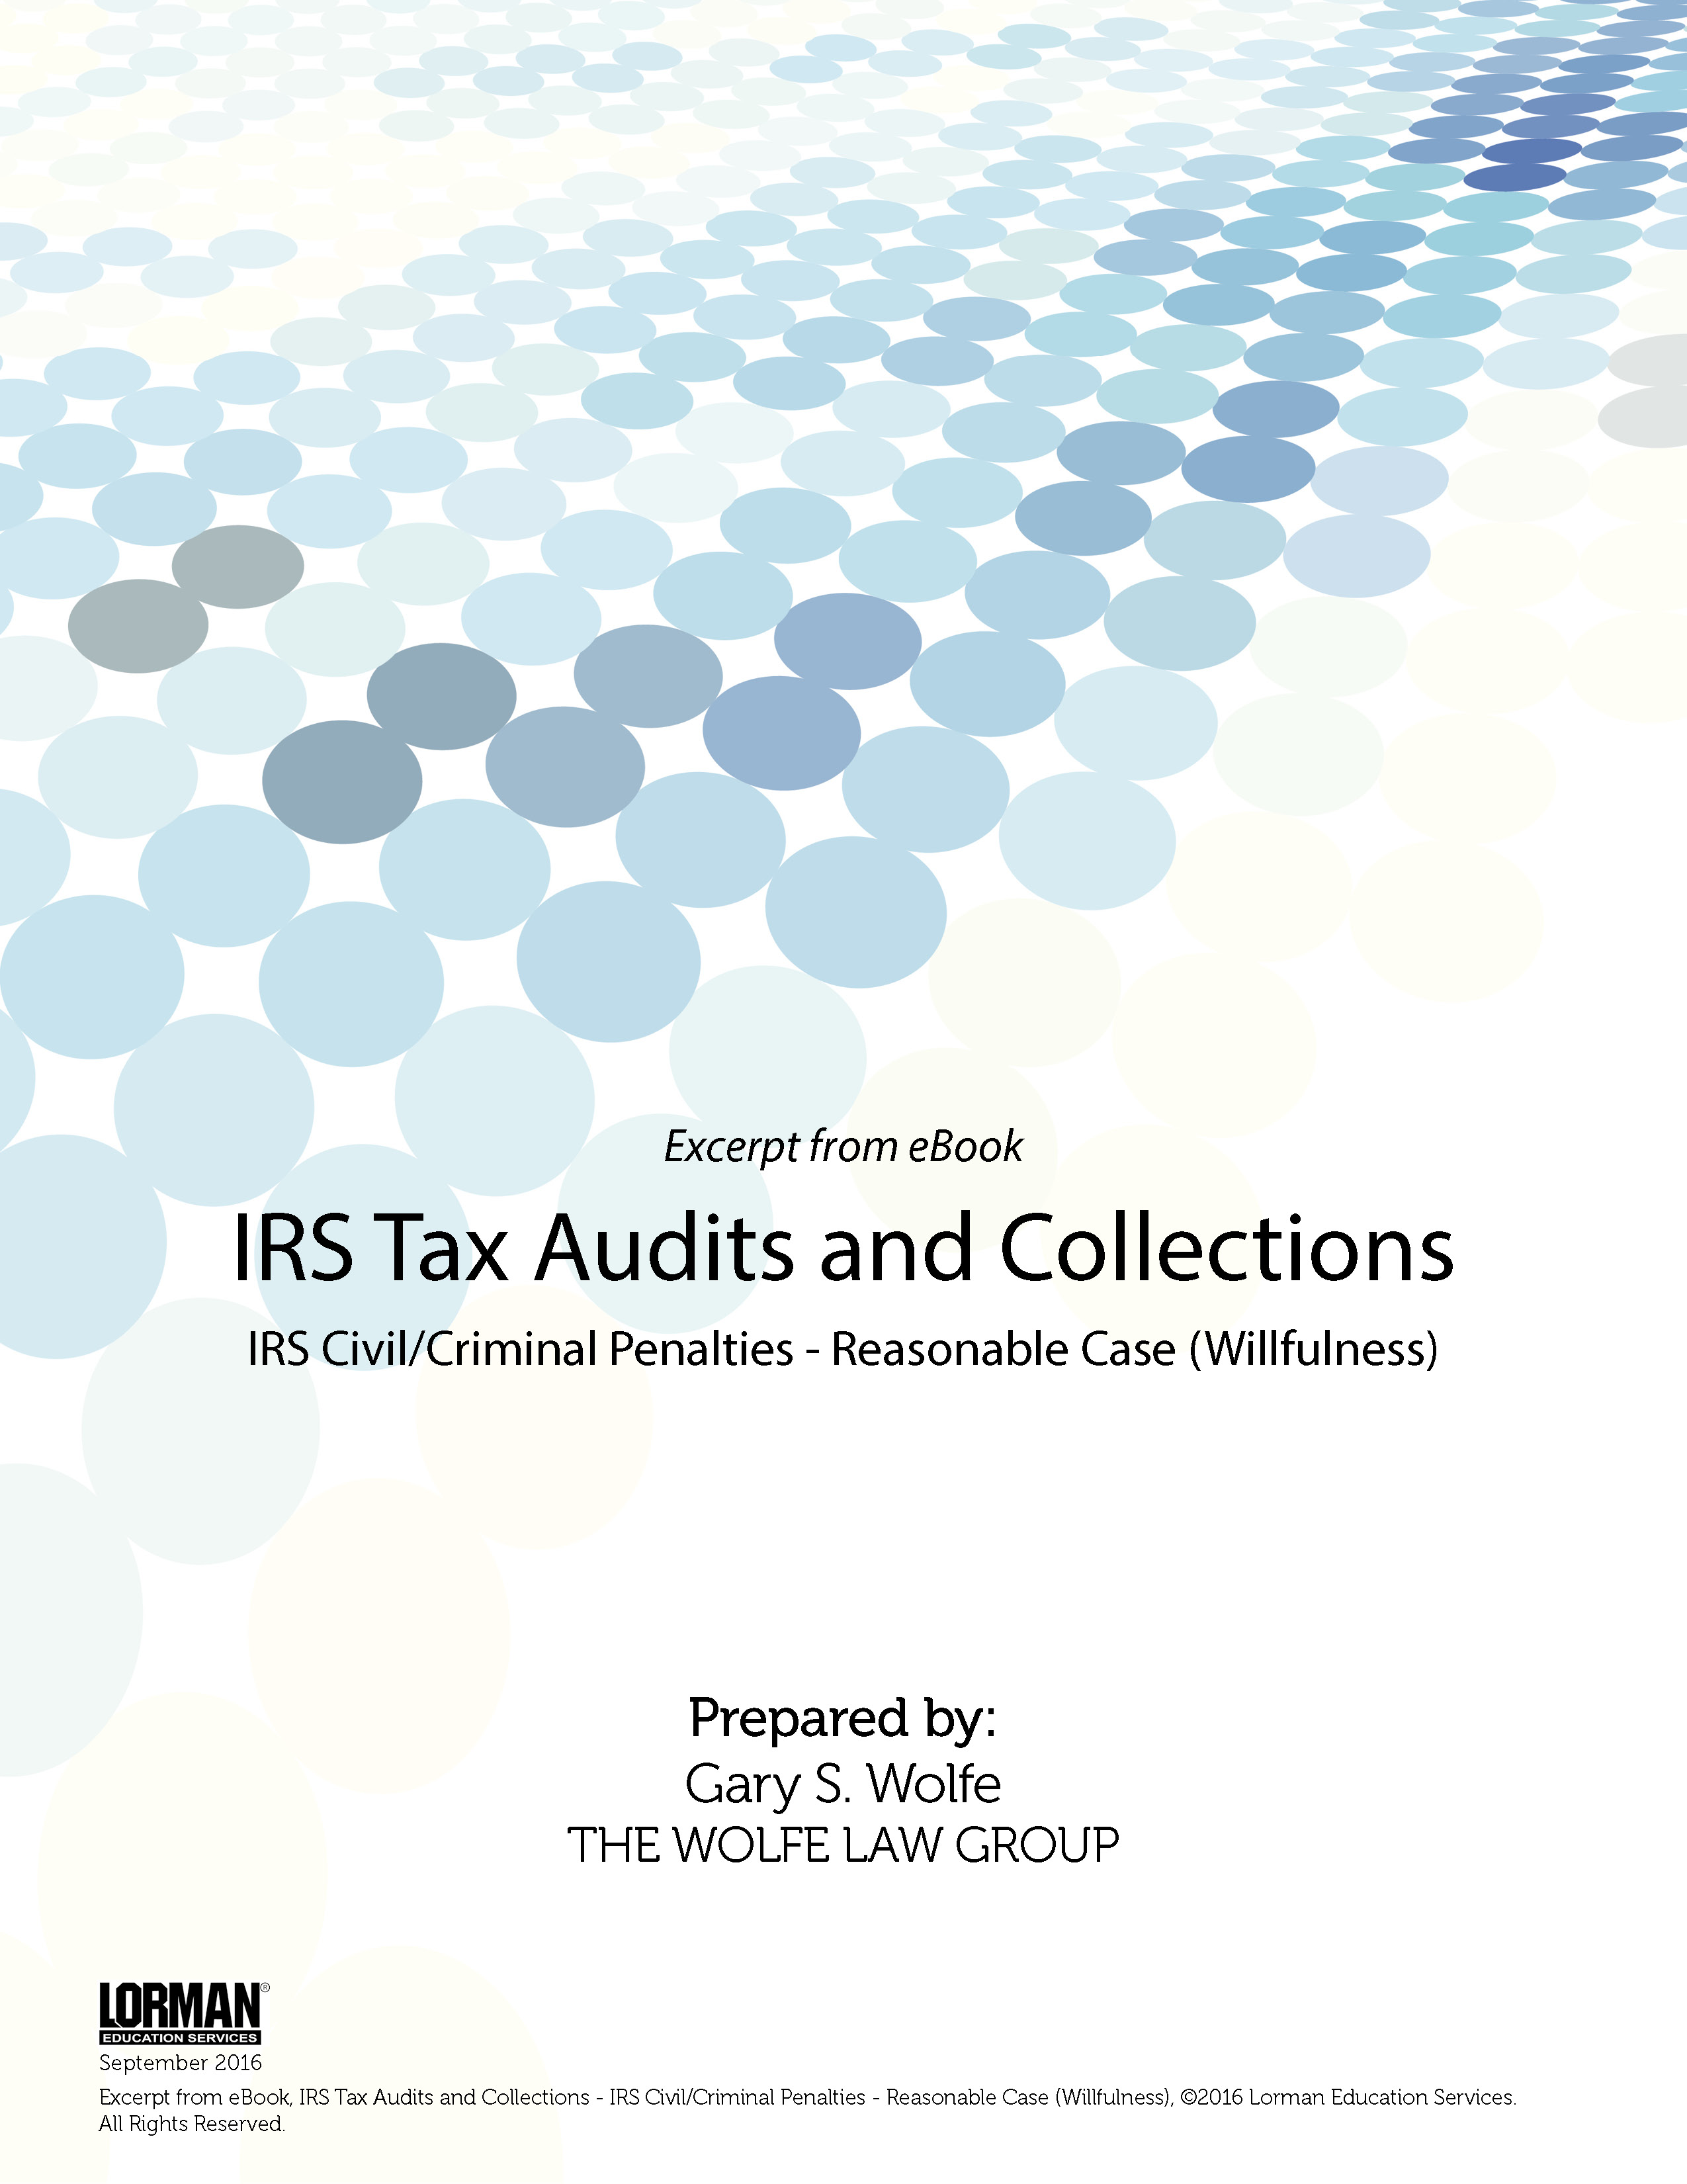 IRS Tax Audits and Collections: IRS Civil/Criminal Penalties - Reasonable Case (Willfulness)